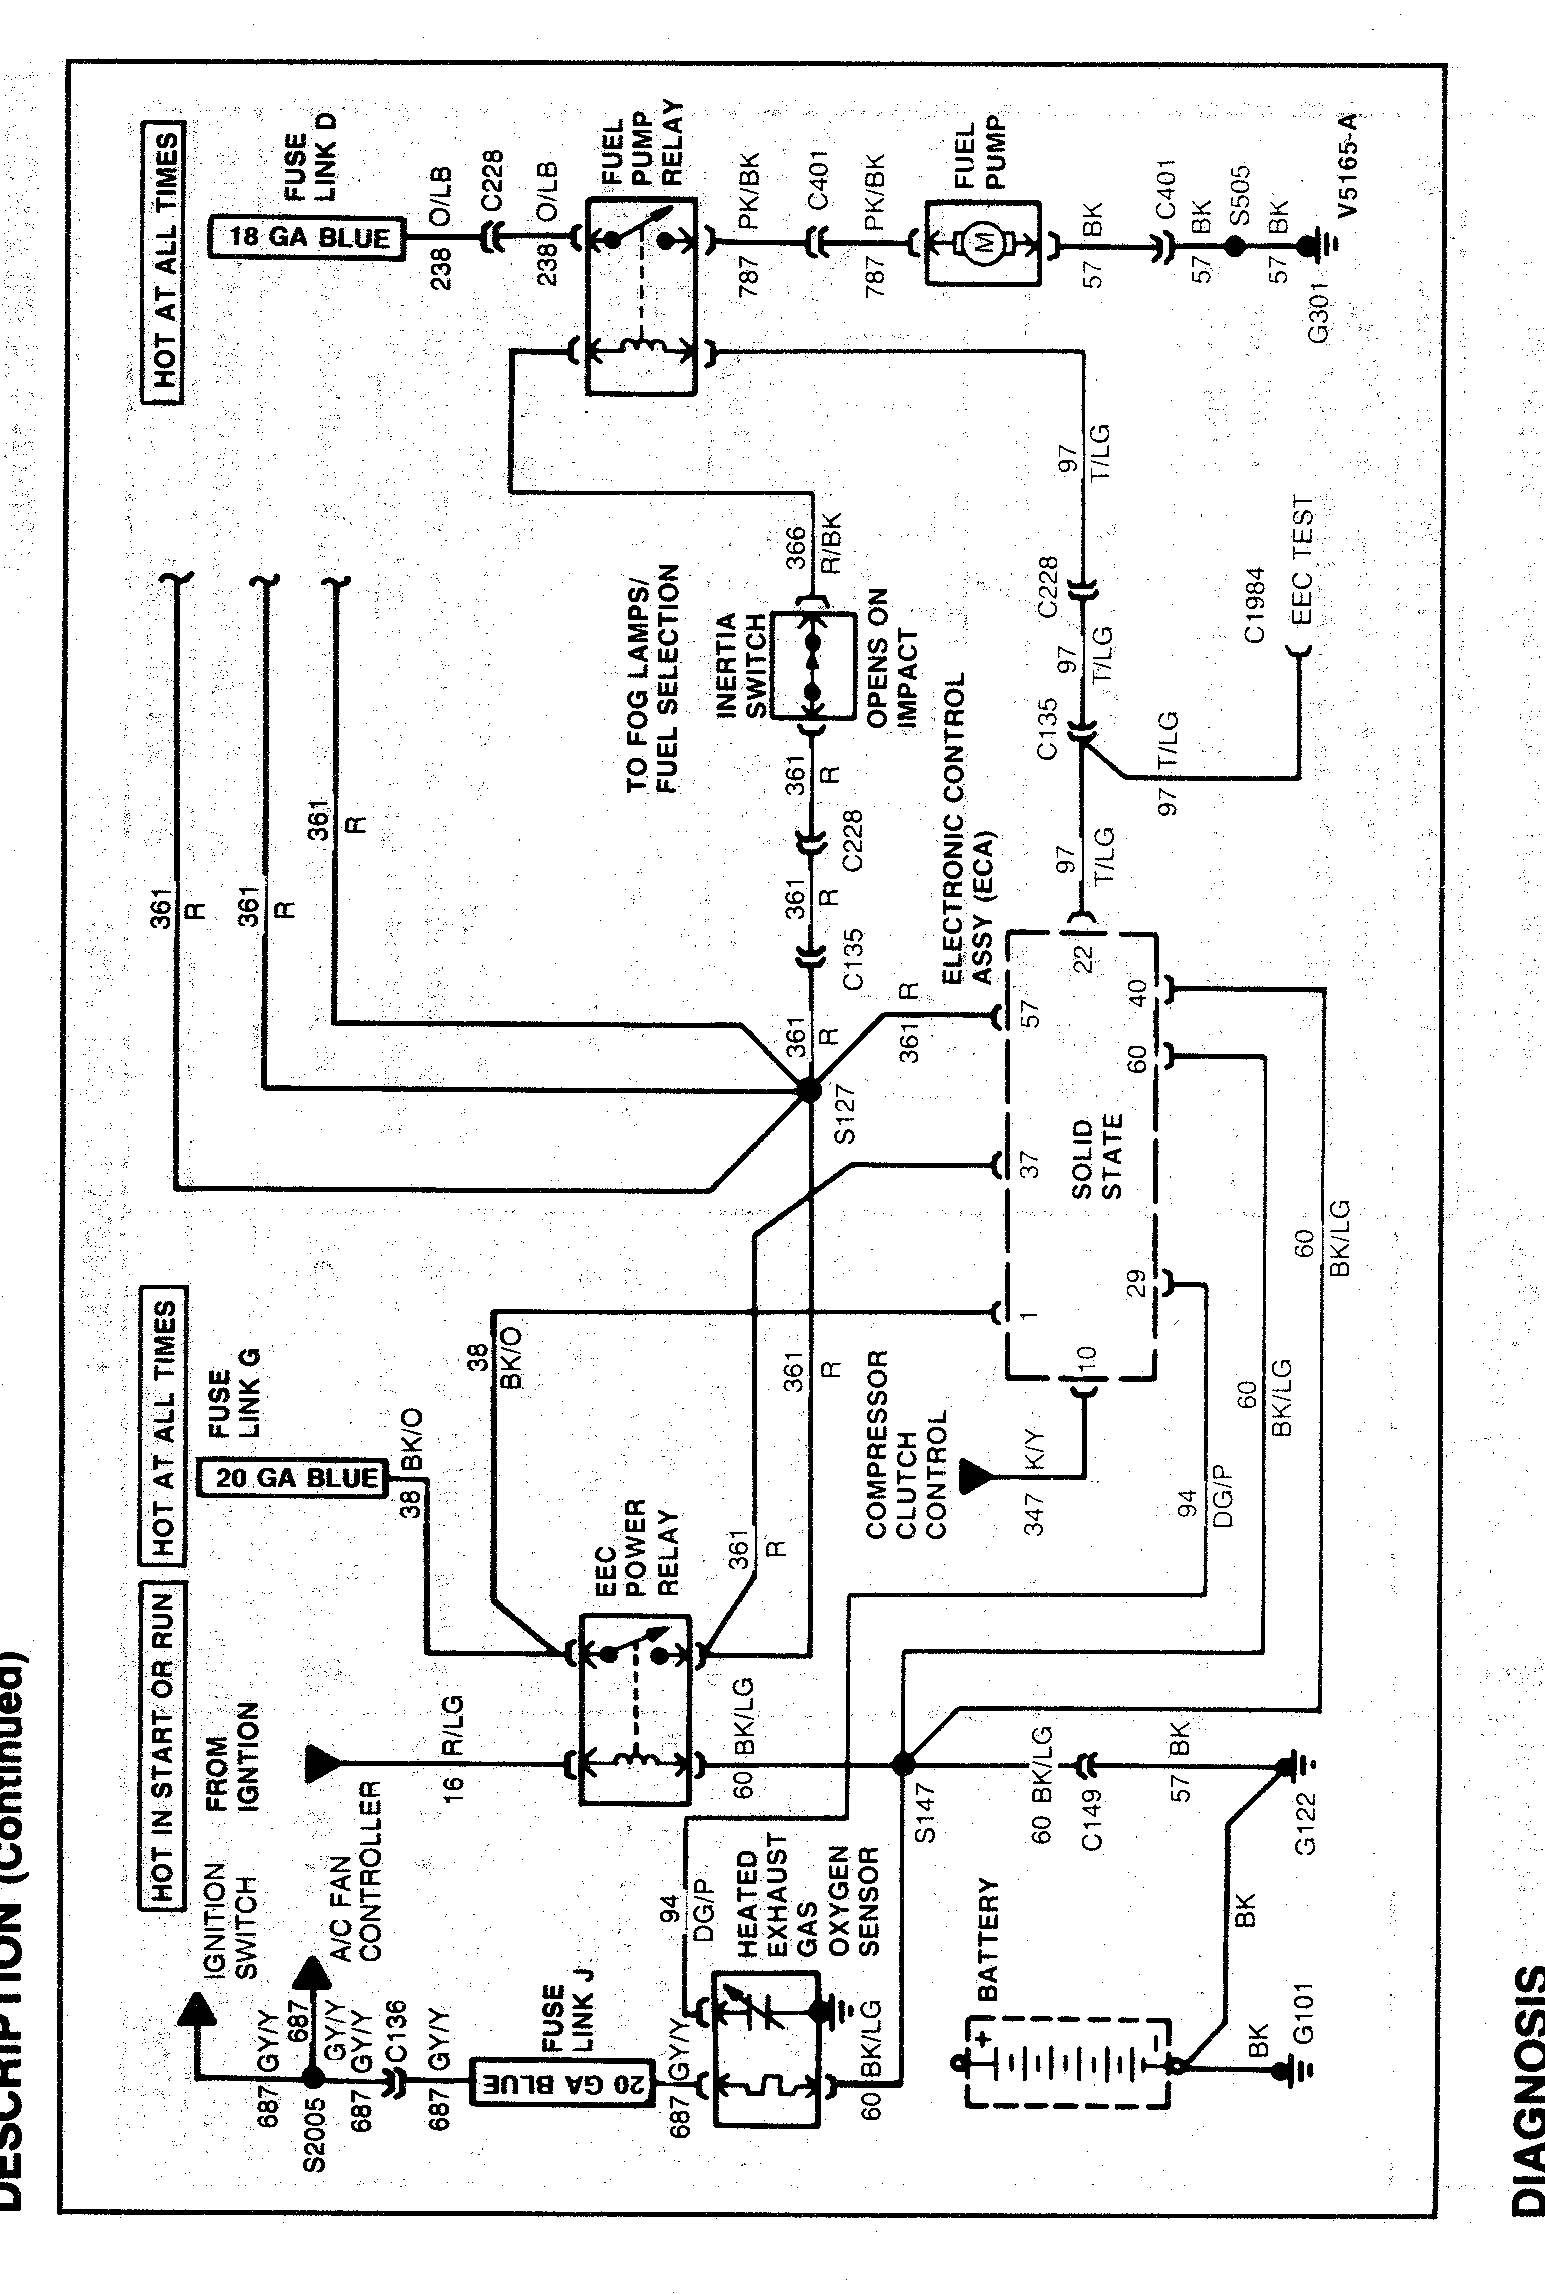 1988 honda civic fuse diagram